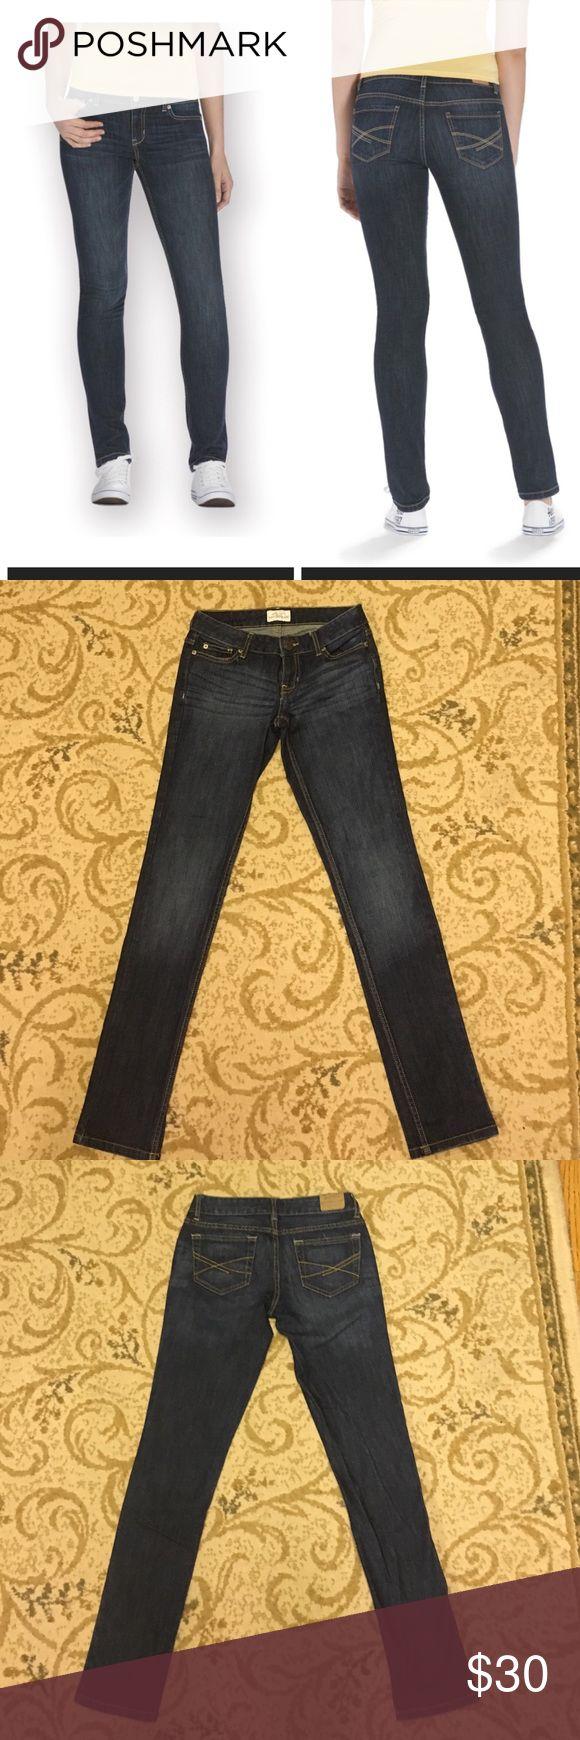 Dark wash Bayla , skinny curvy jean! Size 0Long These are Bayla, skinny curvy jeans by Aeropostale,  size 0 Long! dark wash and in great condition! Please, make an offer! Aeropostale Jeans Skinny